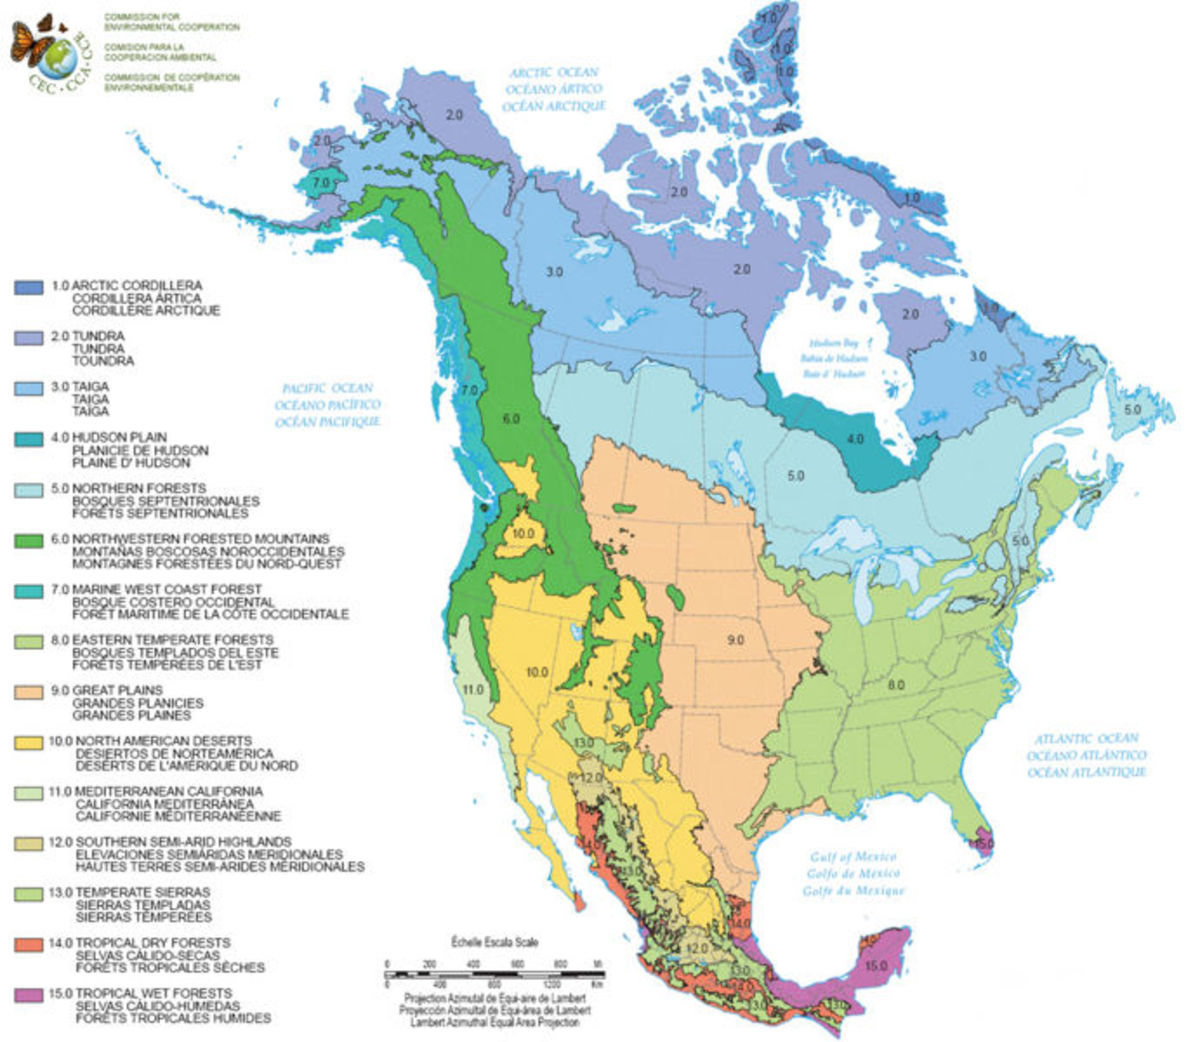 Partitioning America A Bioregional Approach HubPages - Map of us bioregions ancient food traditions